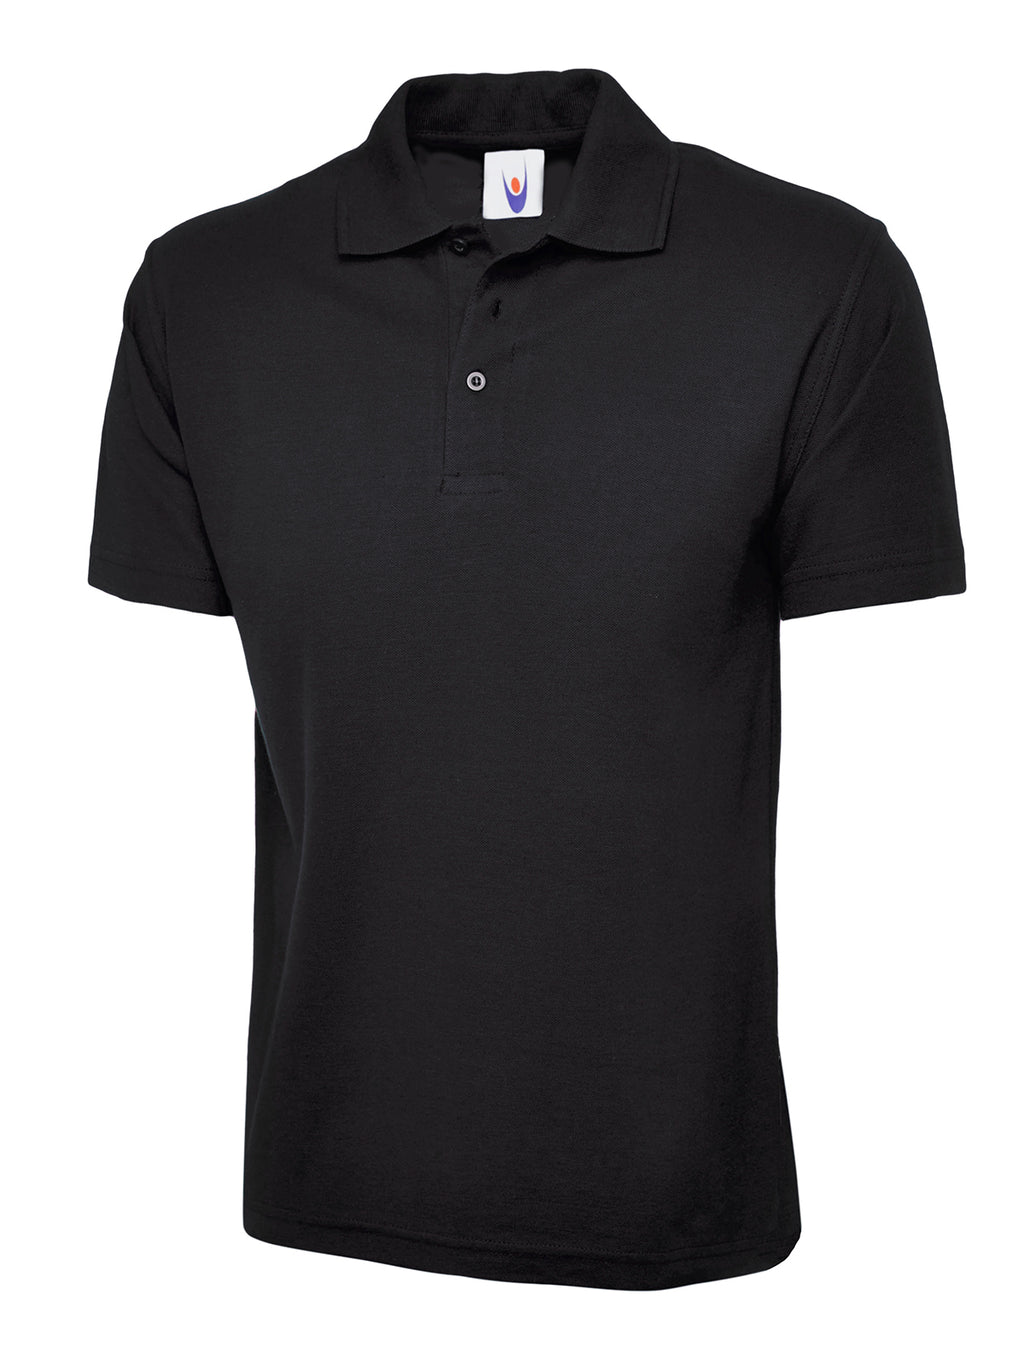 Green Park School Polo Shirt [GPS]